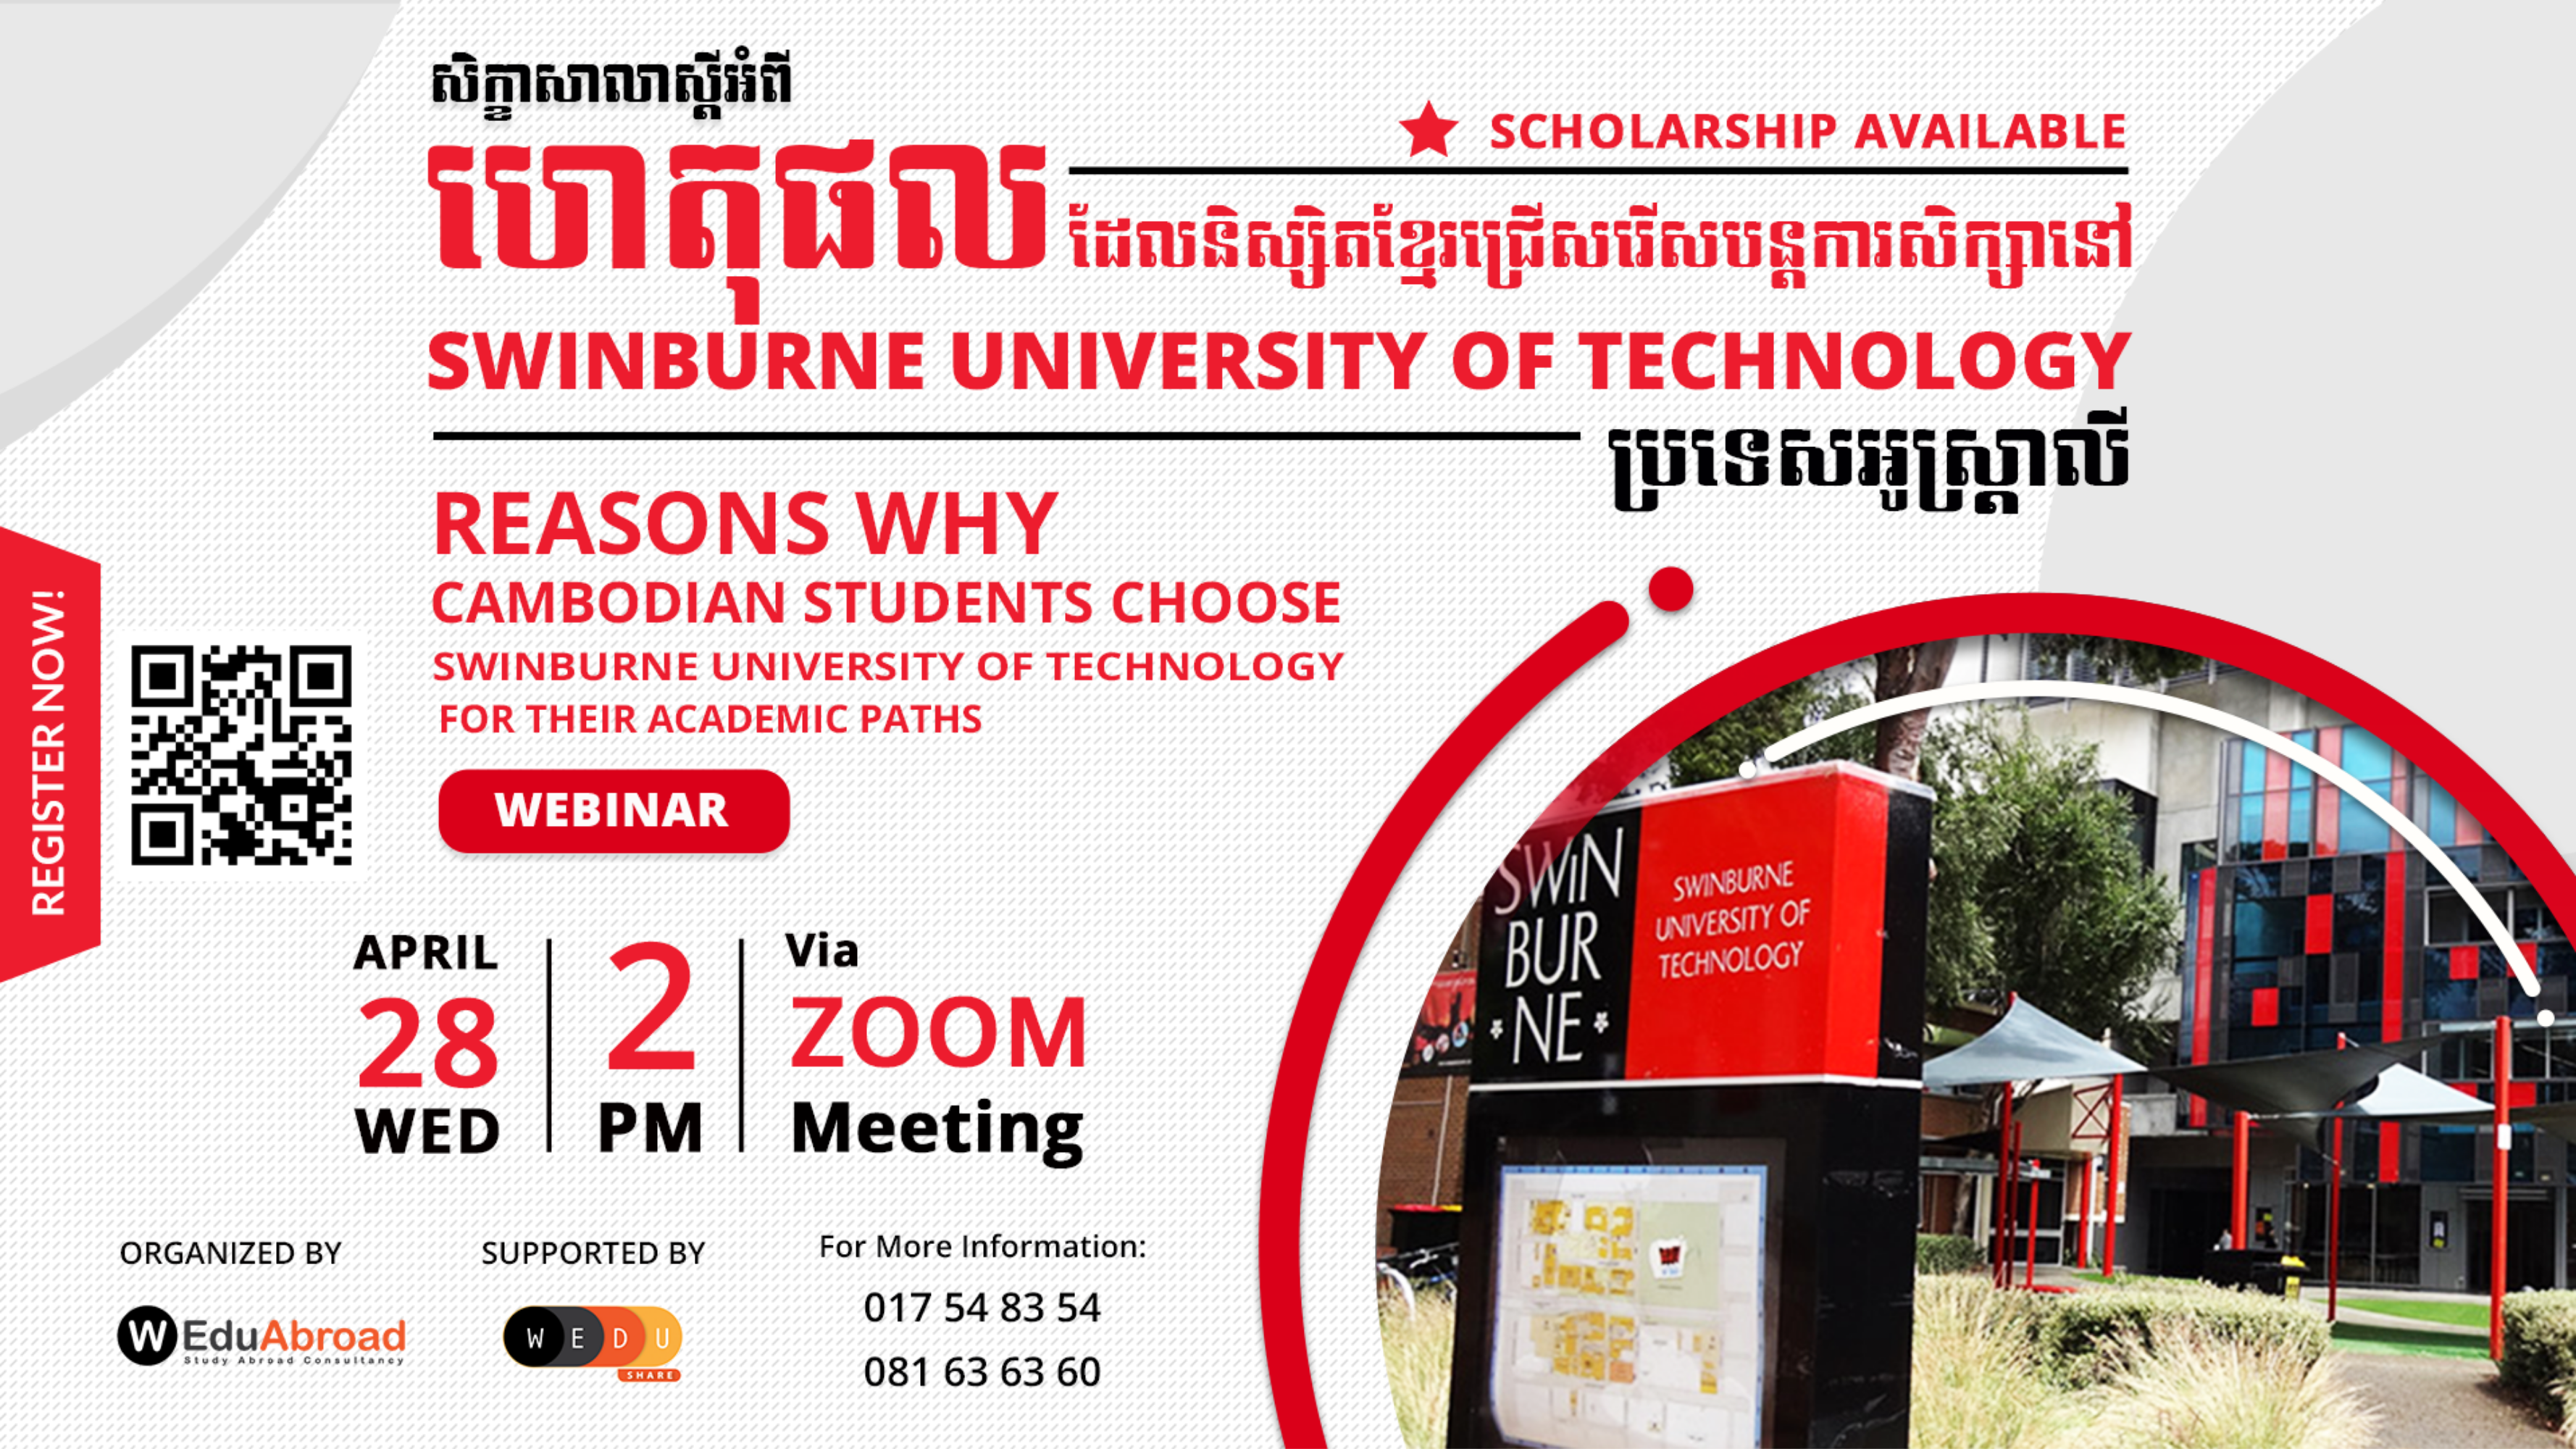 Why Cambodian Students Choose Swinburne University of Technology for their Academic Path